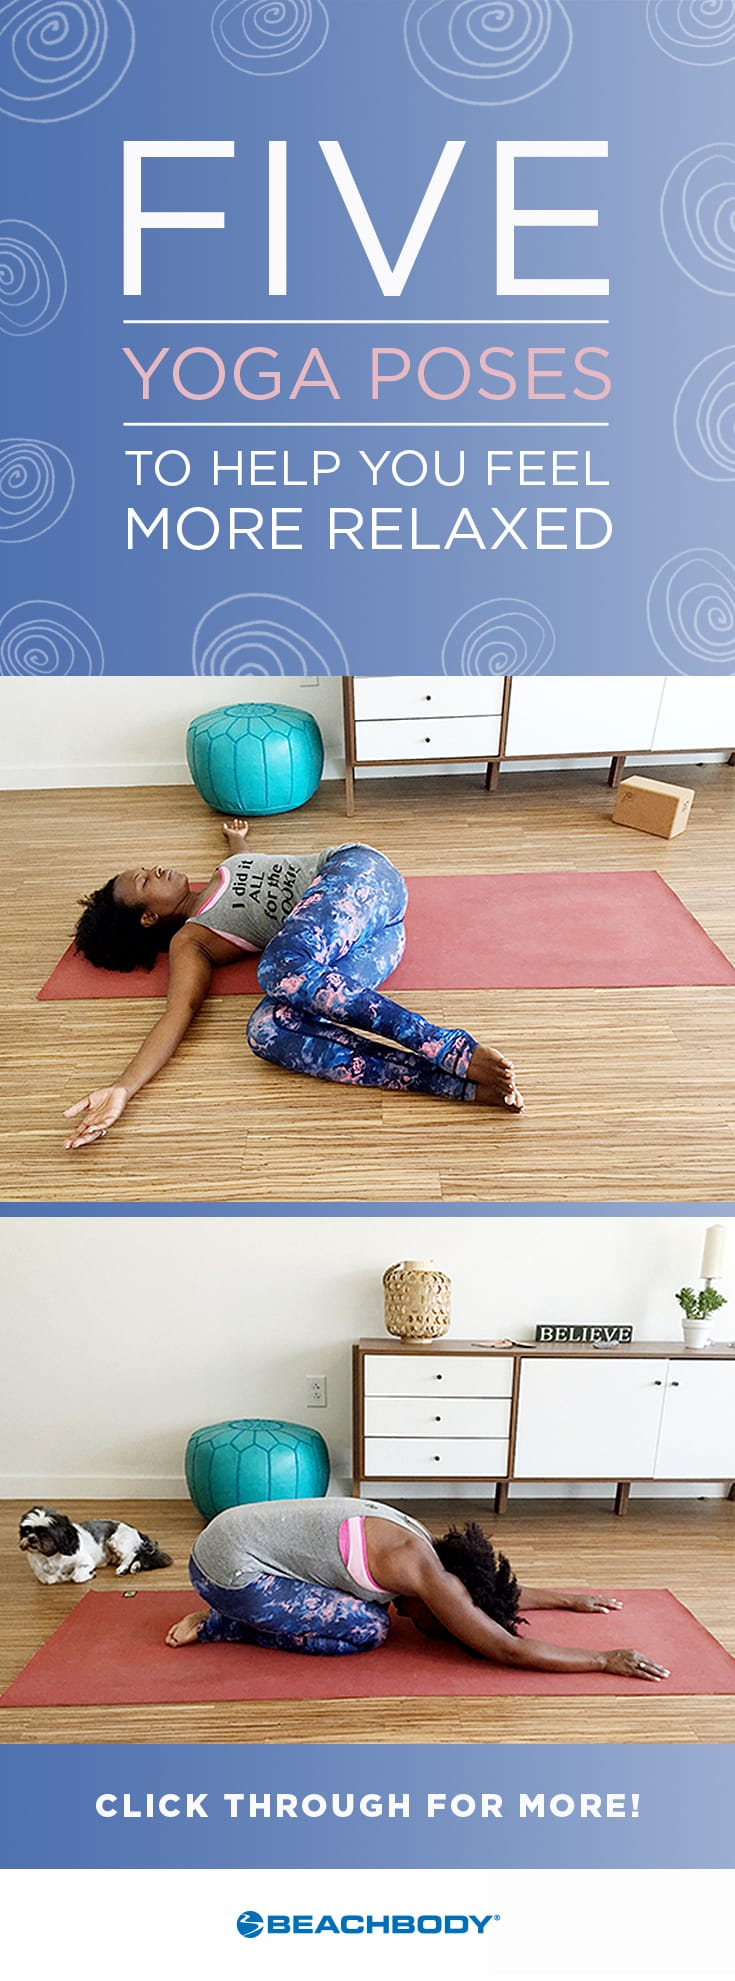 Yoga Poses to Help You Feel More Relaxed